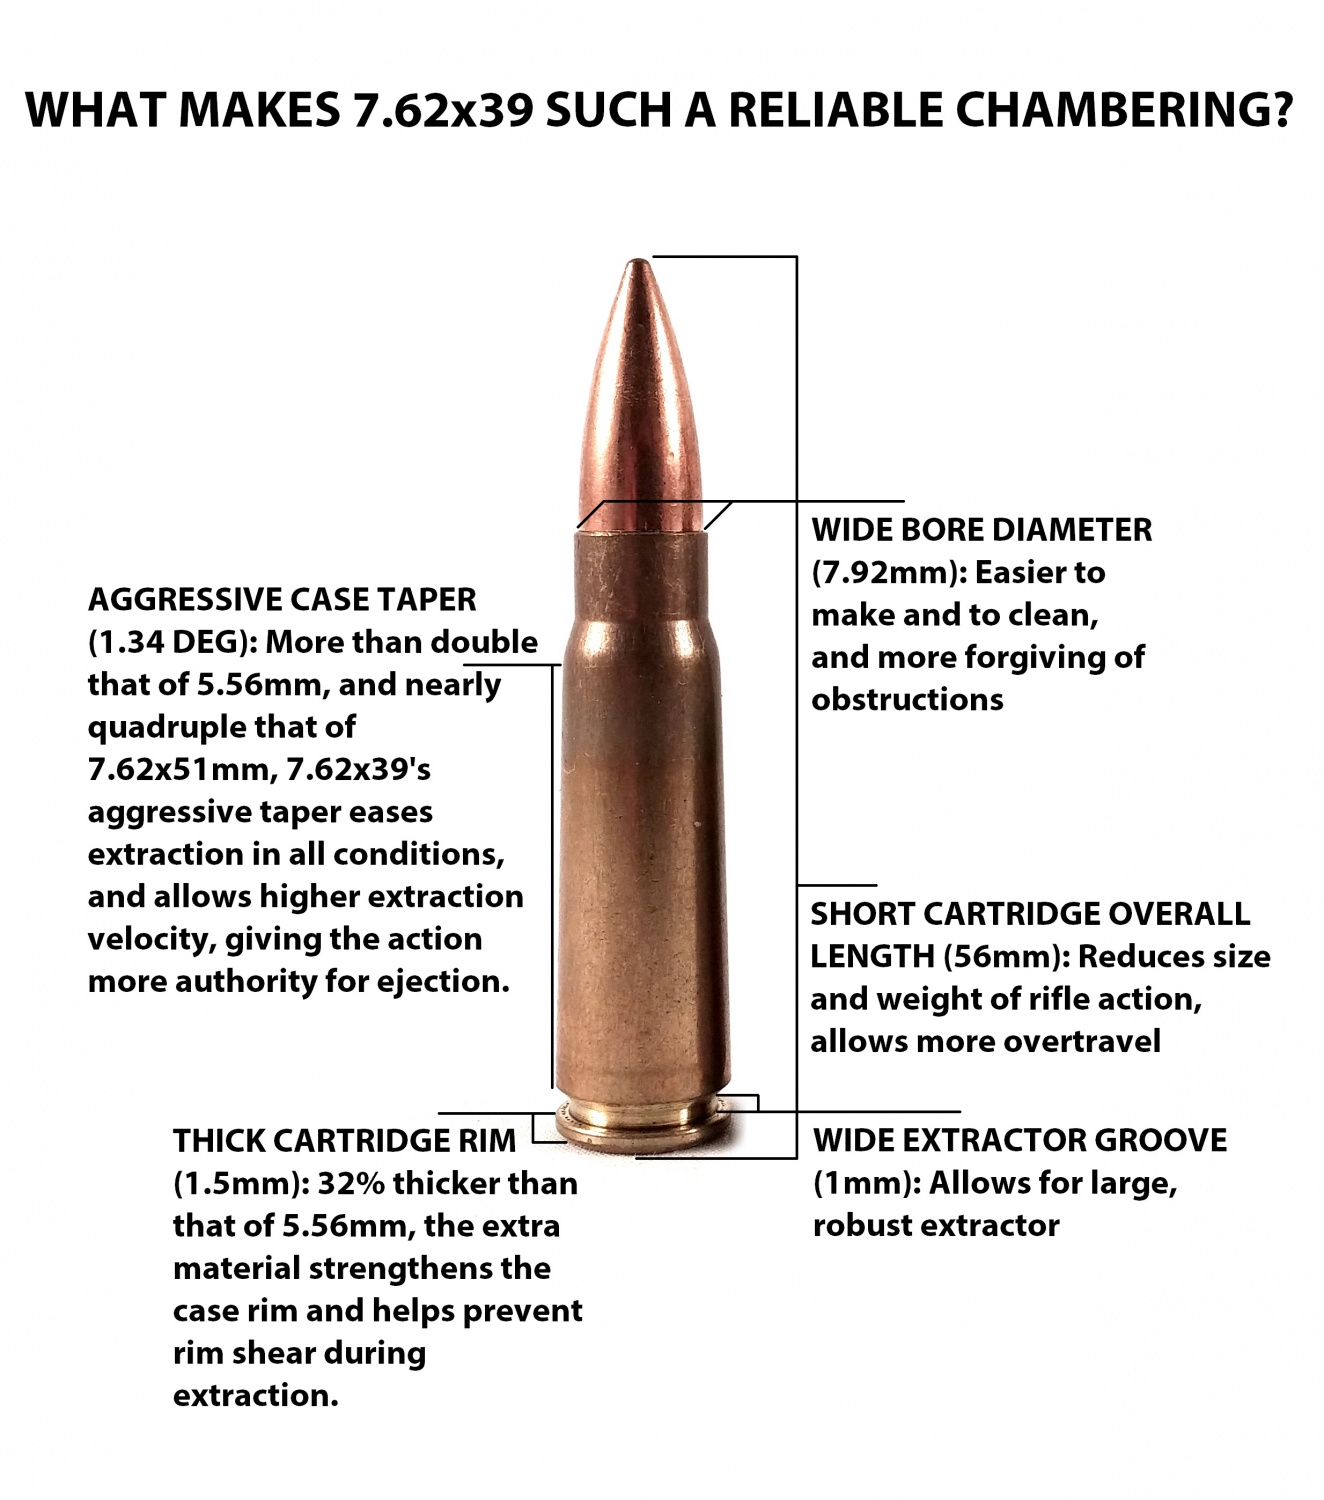 7.62x39 features 2